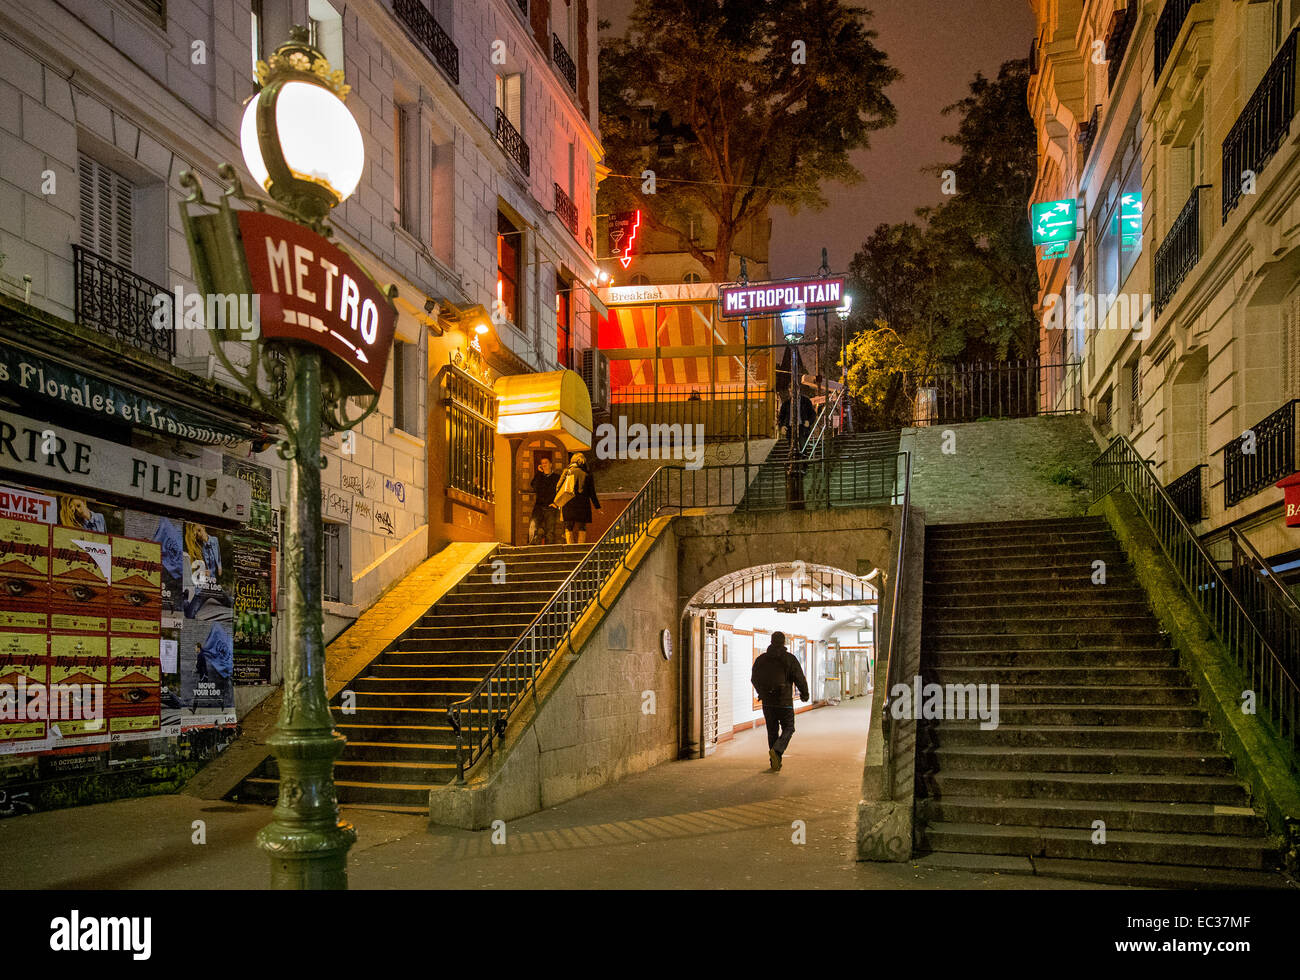 Montmartre paris france métro entrée nuit Photo Stock